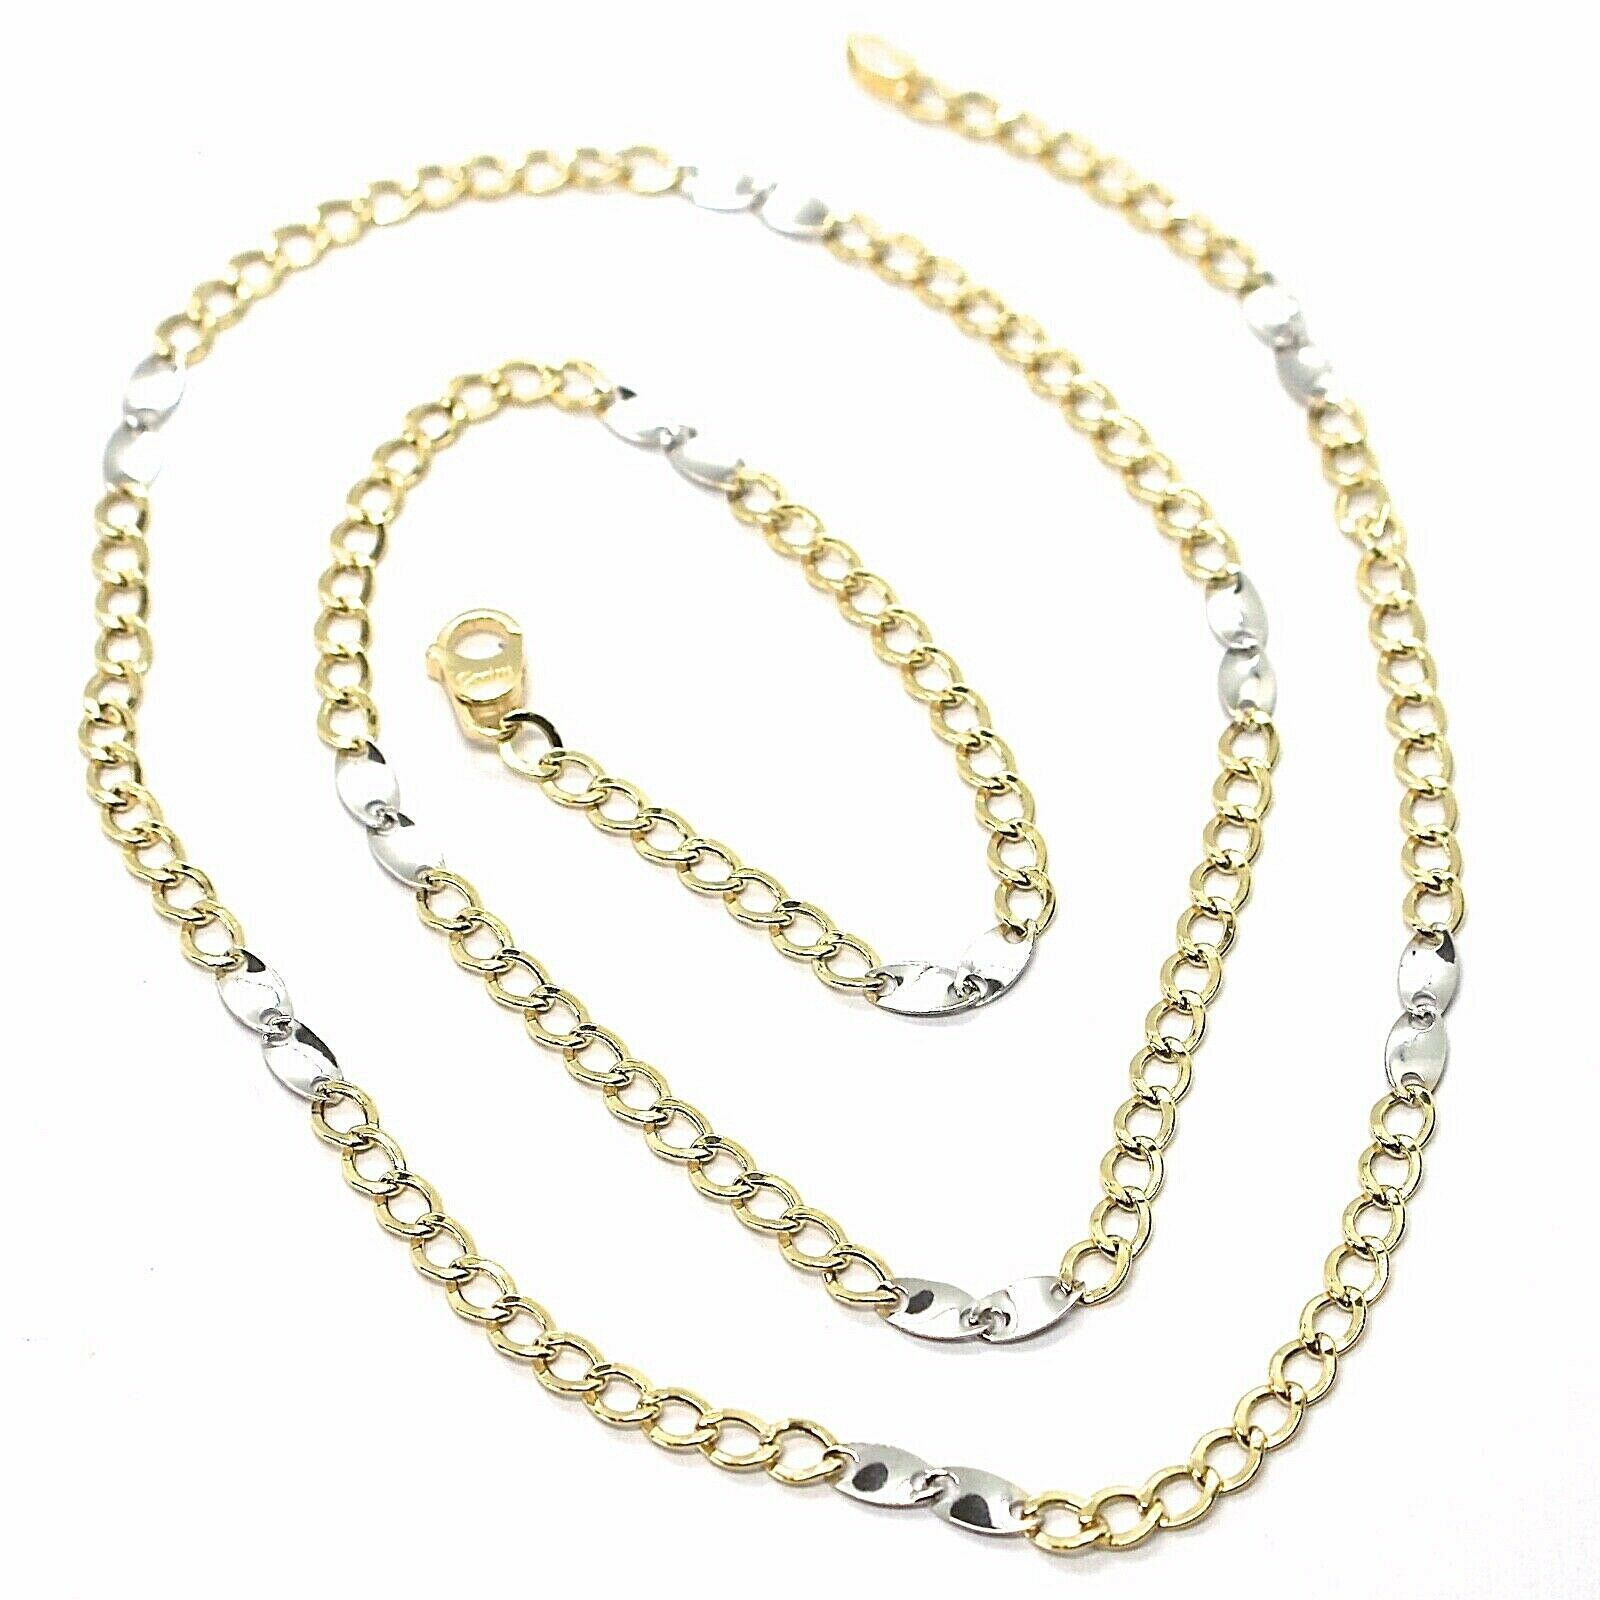 Primary image for Gold Chain Yellow White 750 18K, 50 cm, Groumette Flat and Ovals, 3 MM